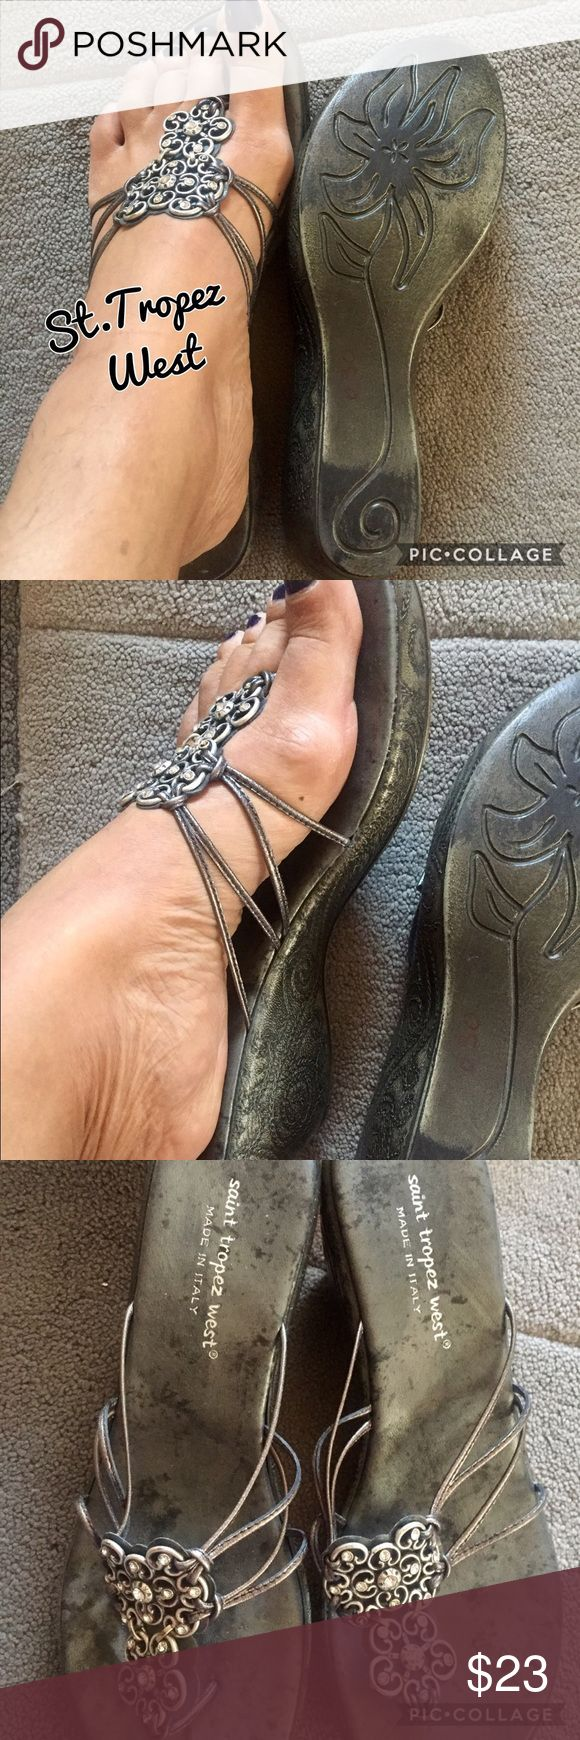 St. Tropez West Silver Pewter Sandals St. Tropez West Silver Pewter Sandals. Sandals have bling ornament center of foot holding 4 tiny straps on shoe. Have scalloped wedge sides. Wedge heel 2 inches. In excellent condition St. Tropez Shoes Sandals